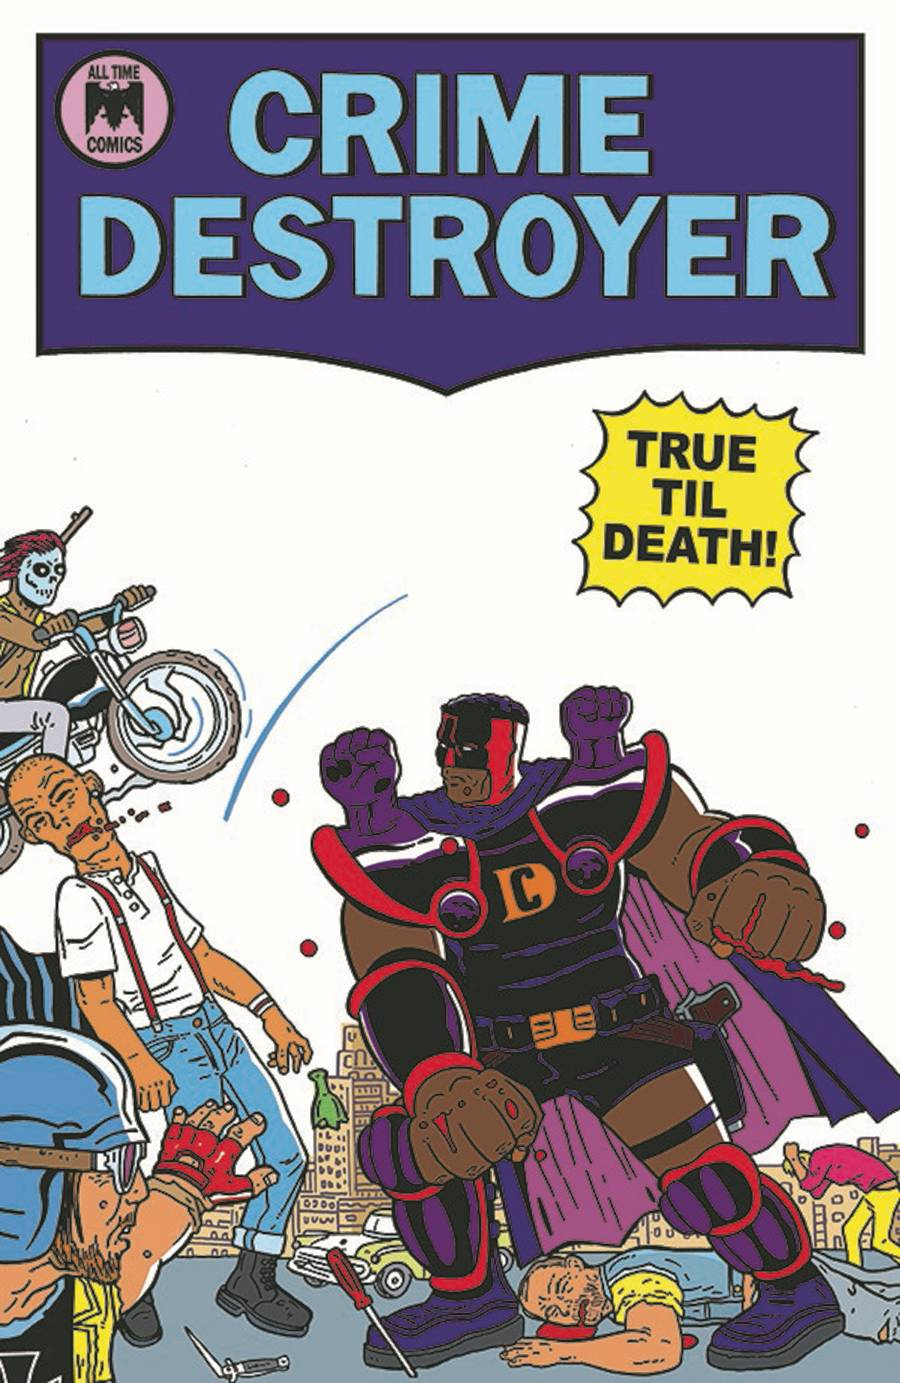 CRIME DESTROYER TRUE TILL DEATH #1